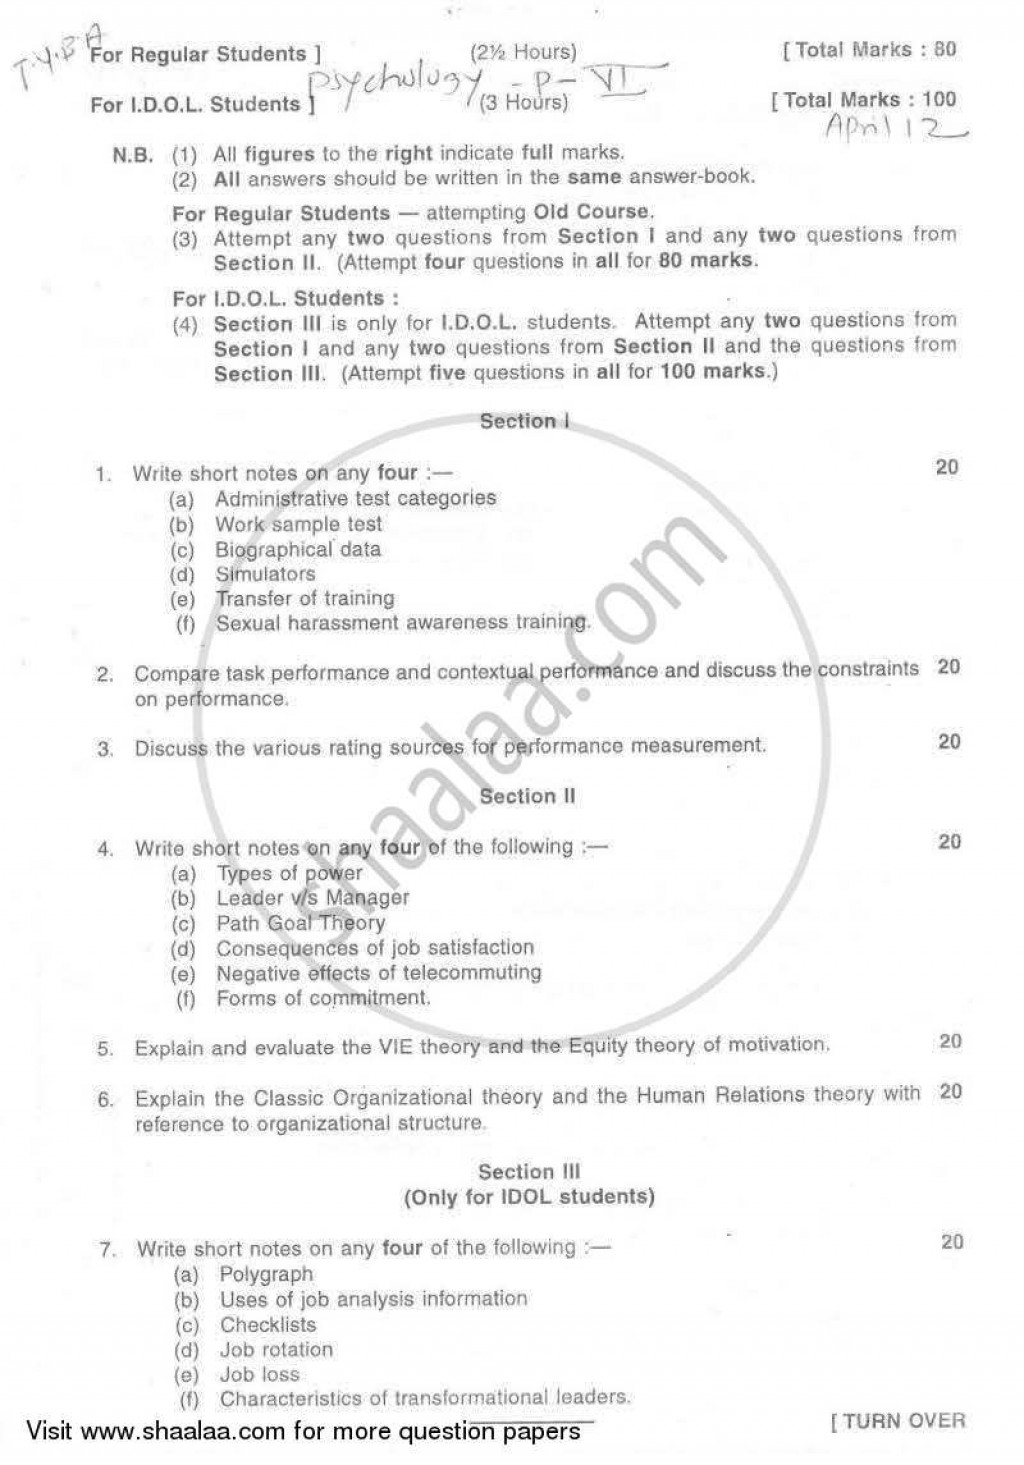 017 Psychologyearch Paper On Dreams University Of Mumbai Bachelor Industrial Organizational T Y Yearly Pattern Semester Tyba 2011 29a03925dfc524f2aa4cb10e4d3da996a Singular Psychology Research Articles Large